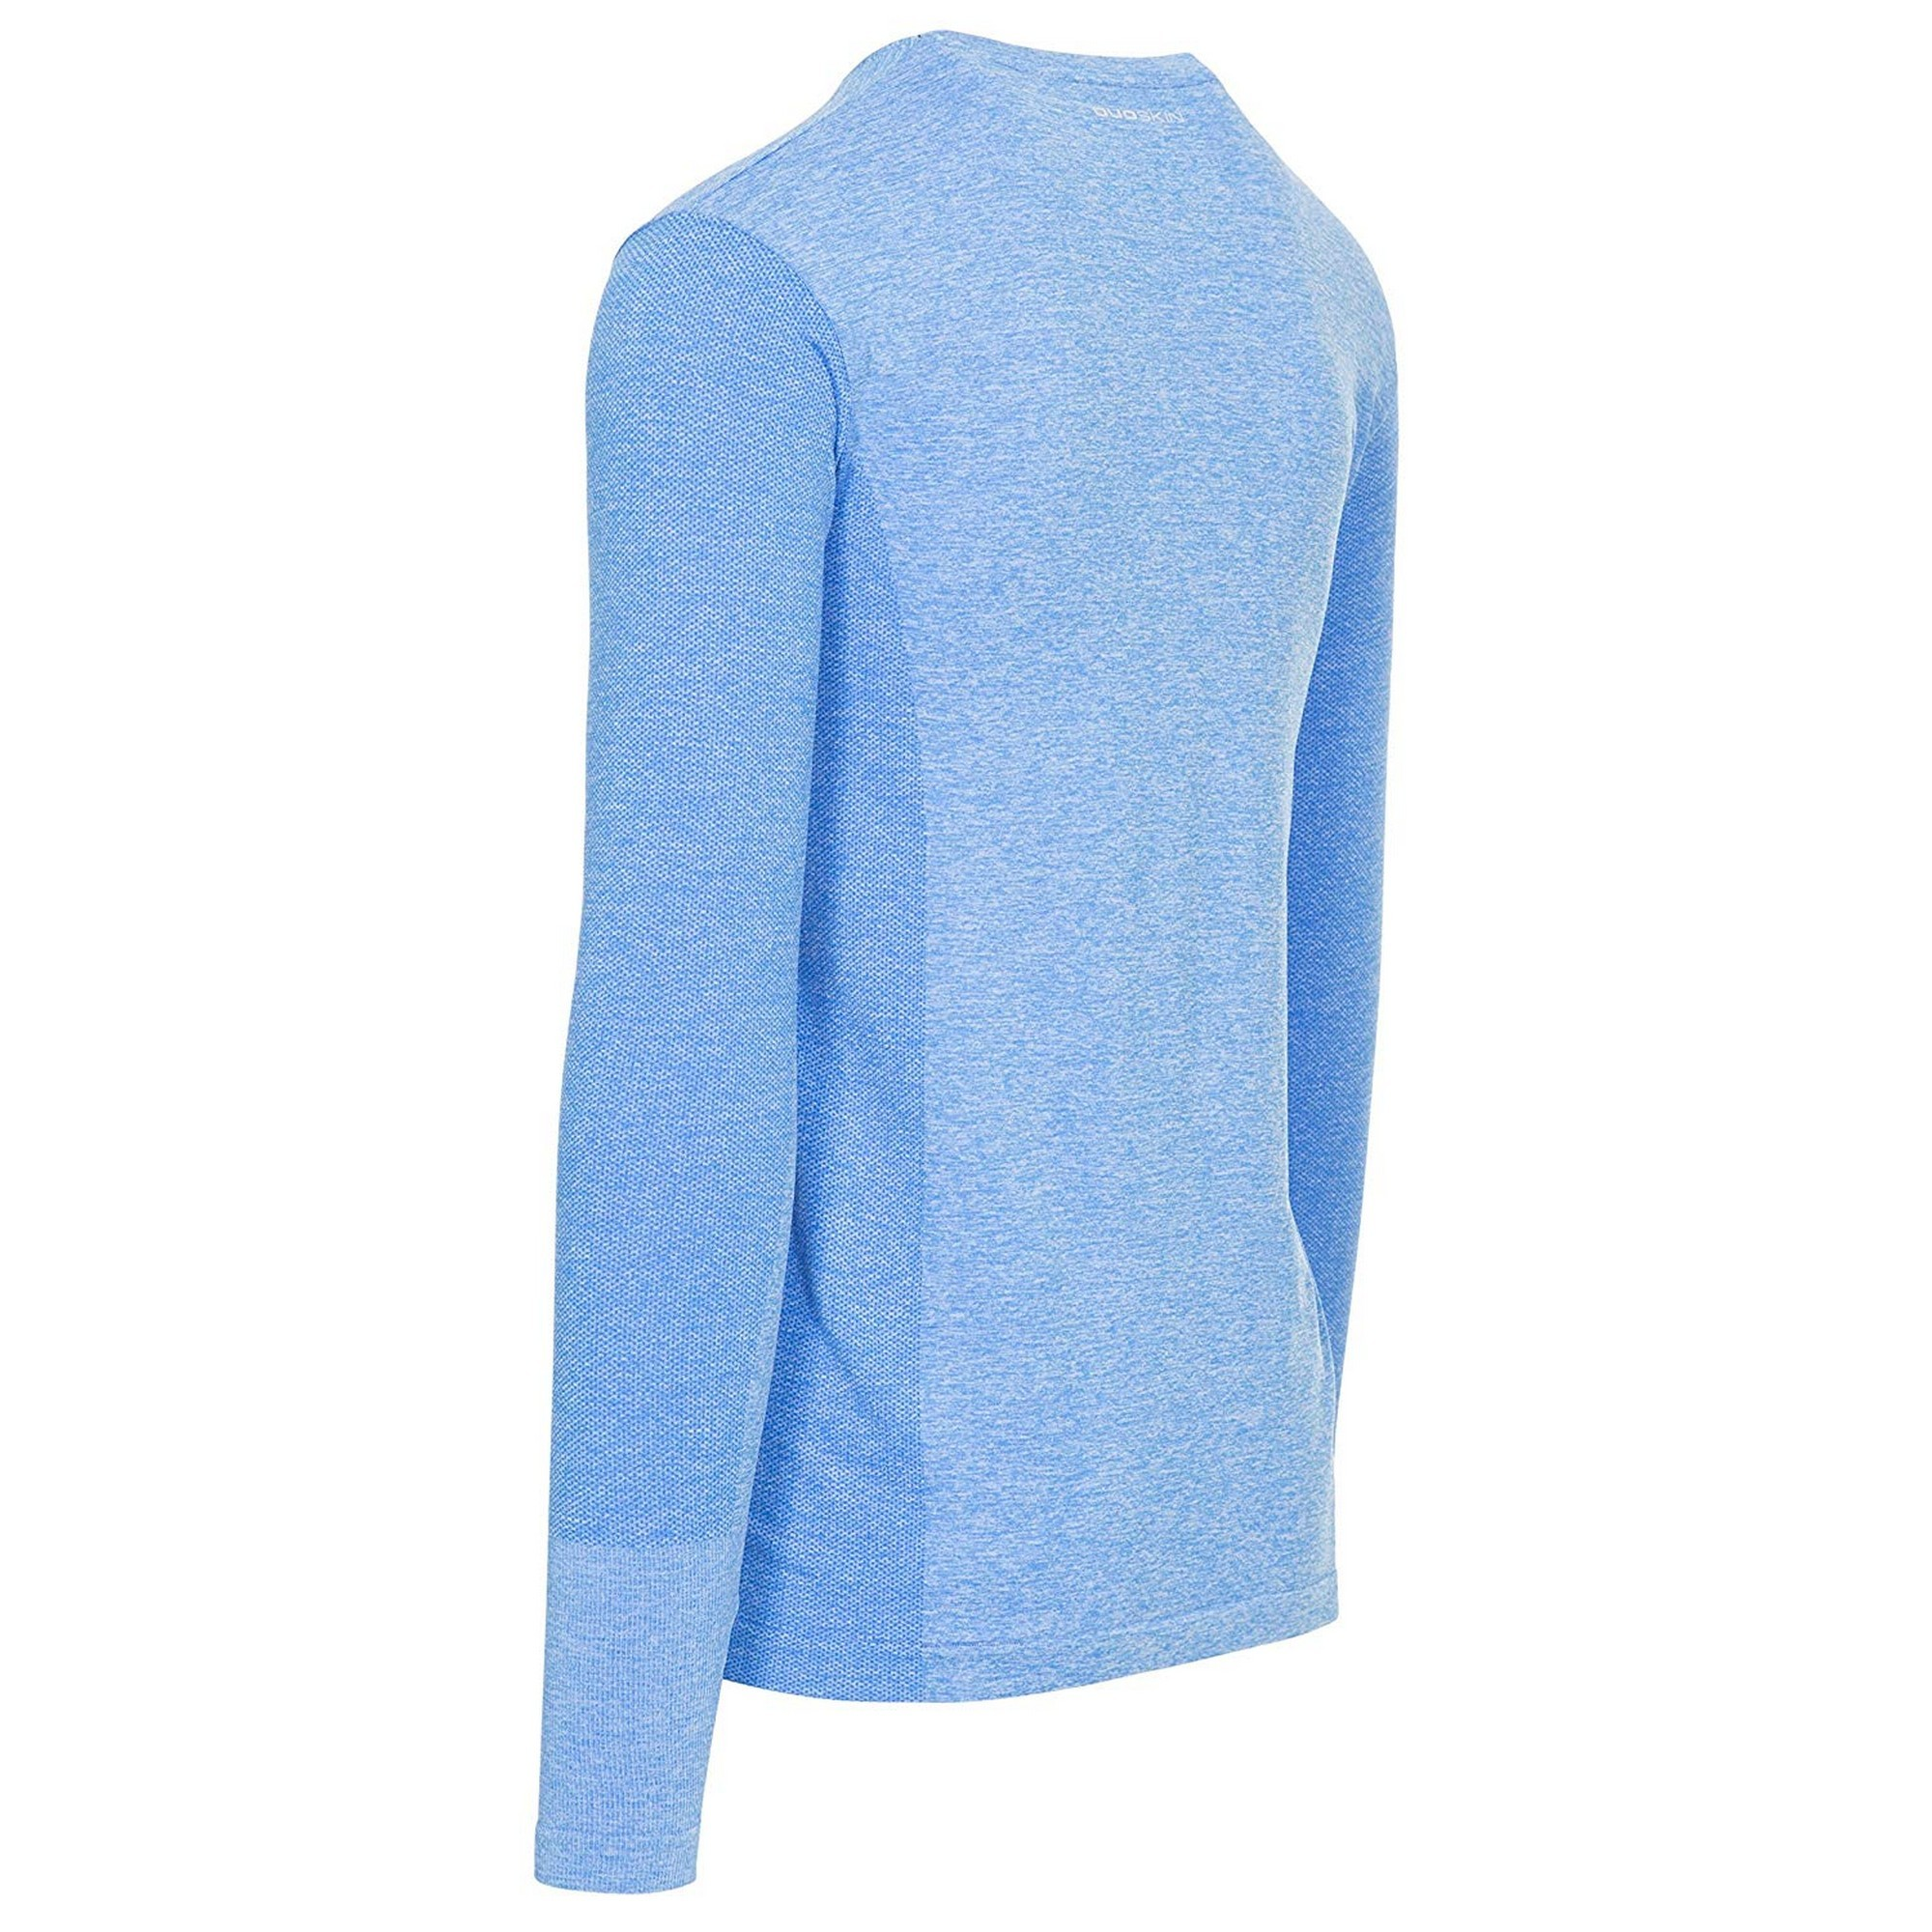 Trespass Mens Timo Long Sleeve Active Top TP3573